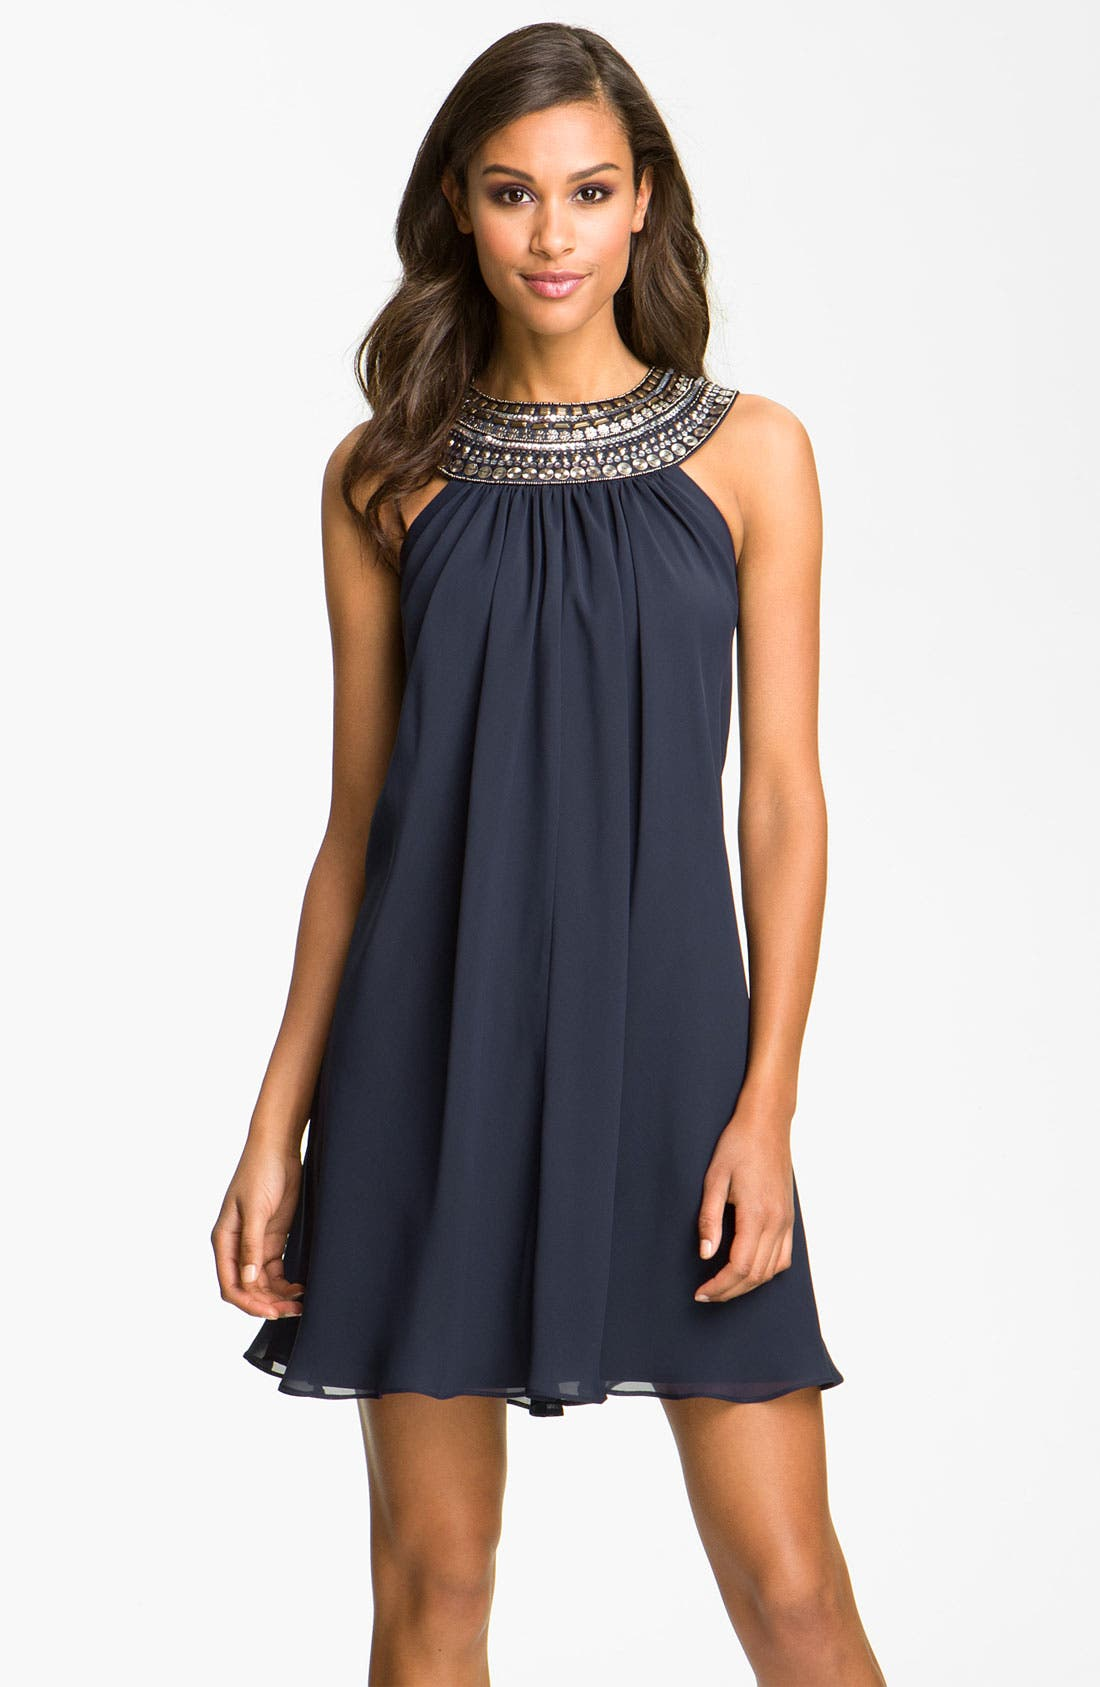 Alternate Image 1 Selected - JS Boutique Embellished Chiffon Trapeze Dress (Petite)